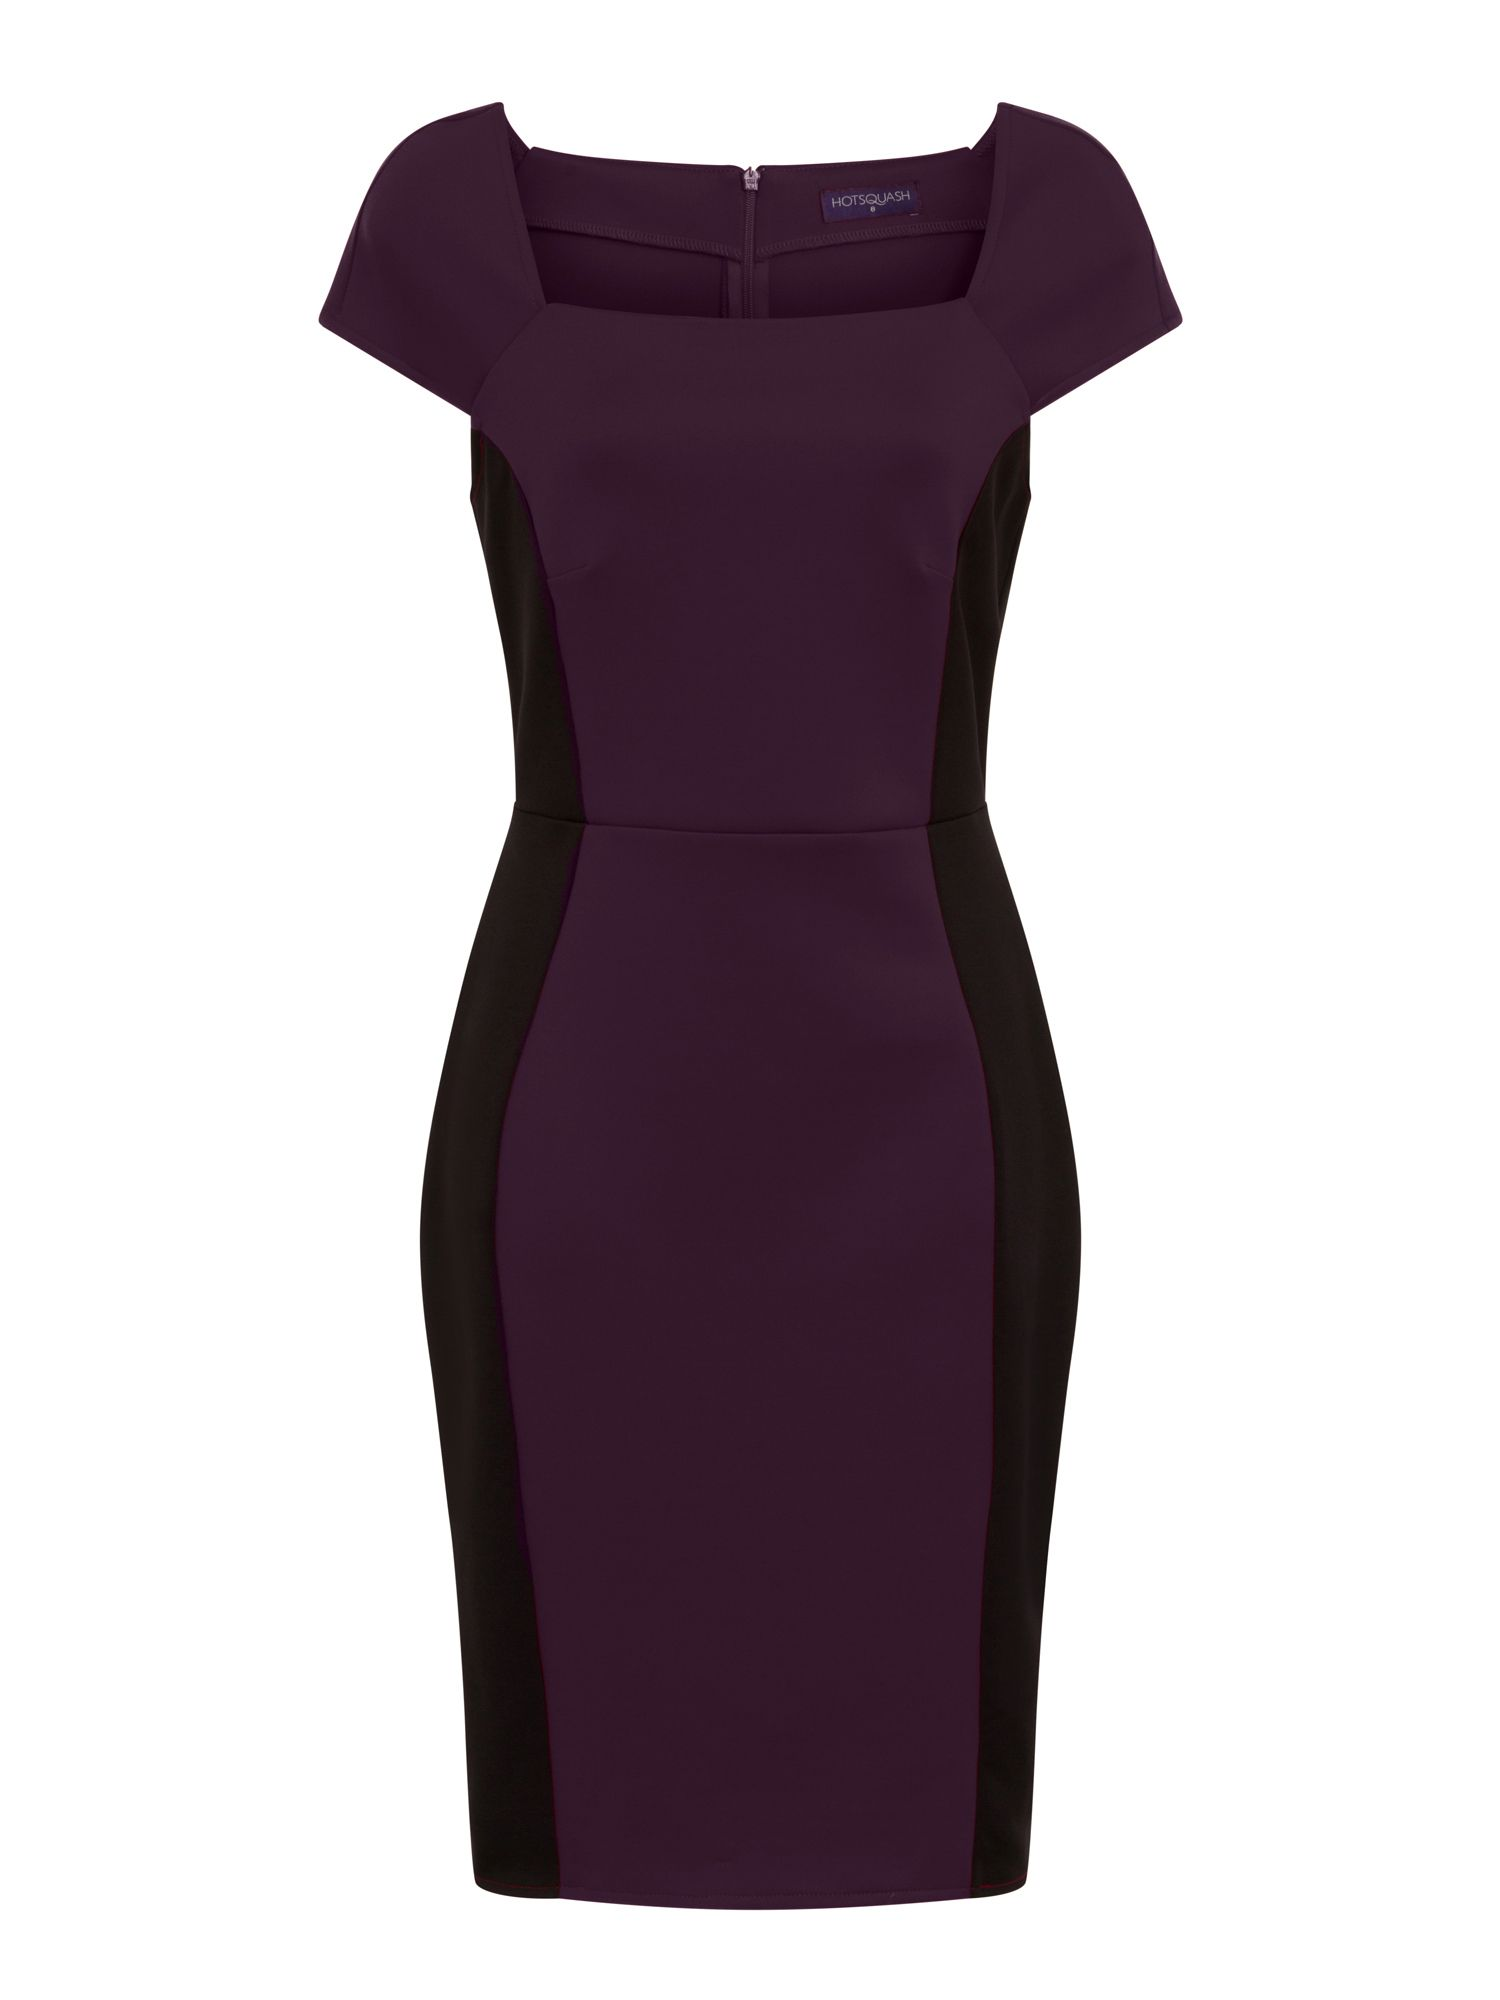 HotSquash Square Necked Ponte Dress in Clever, Damson